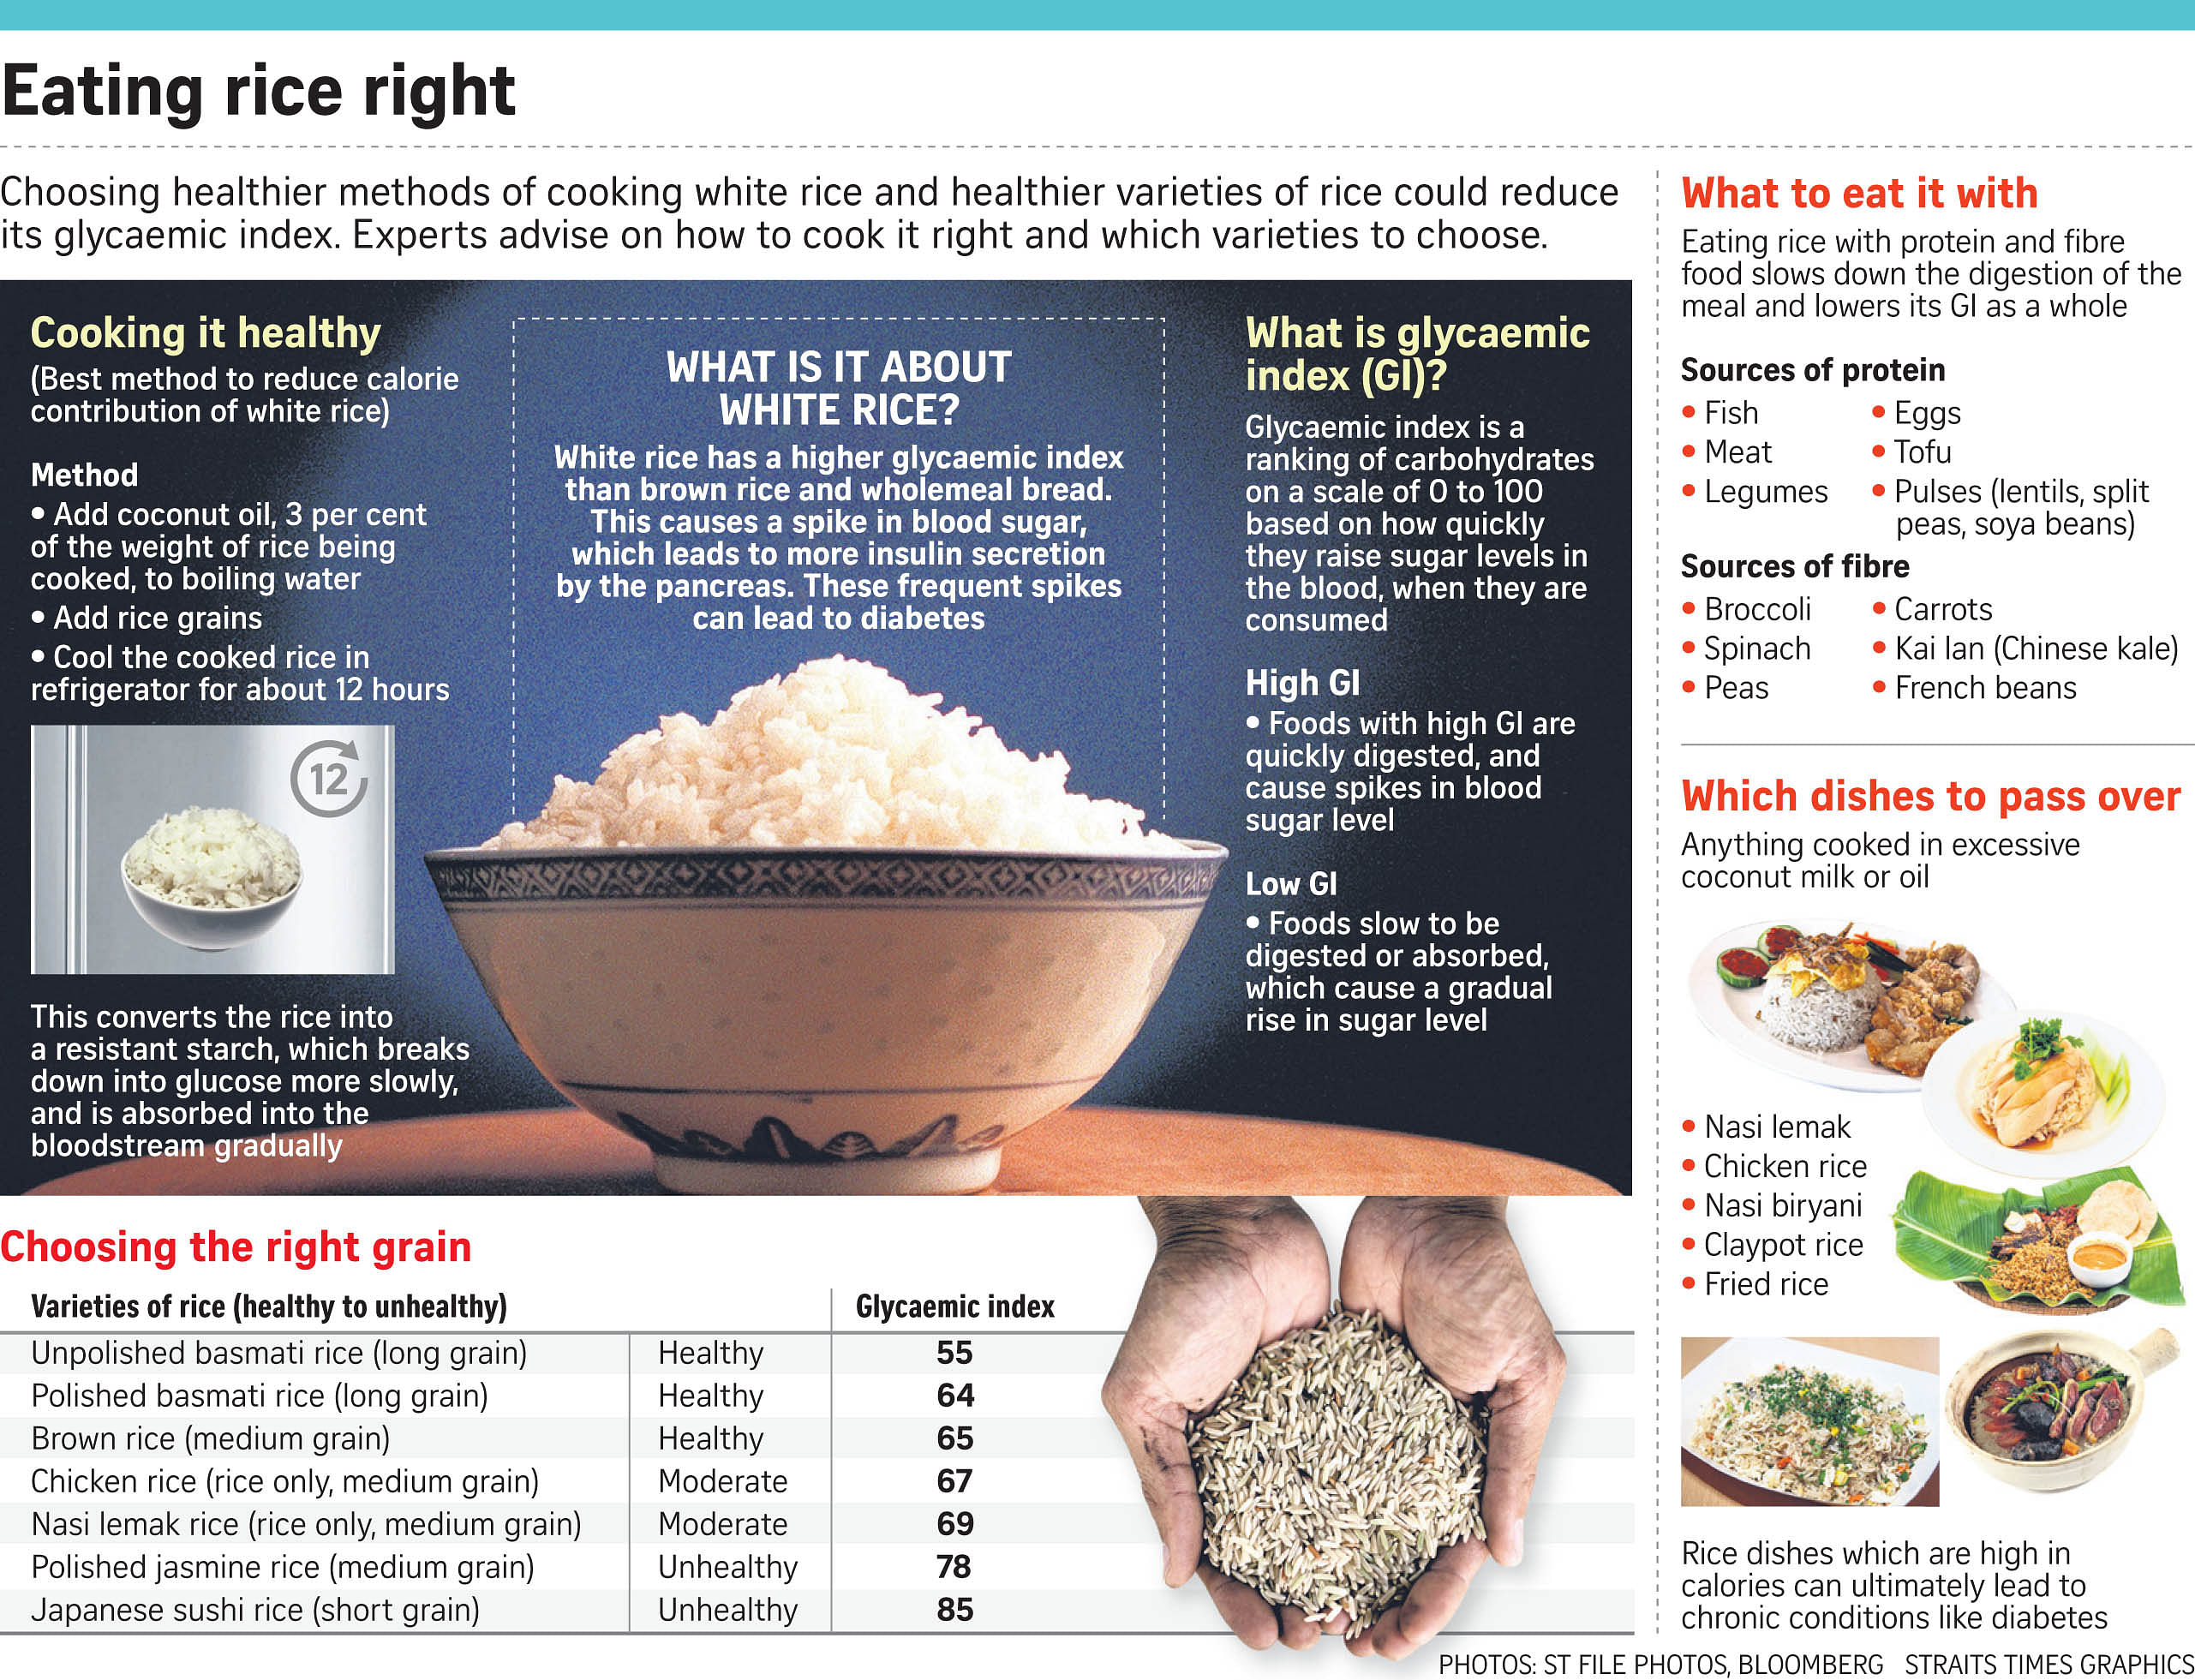 Getting Diabetes White Rice And Gi All Worked Out Health News